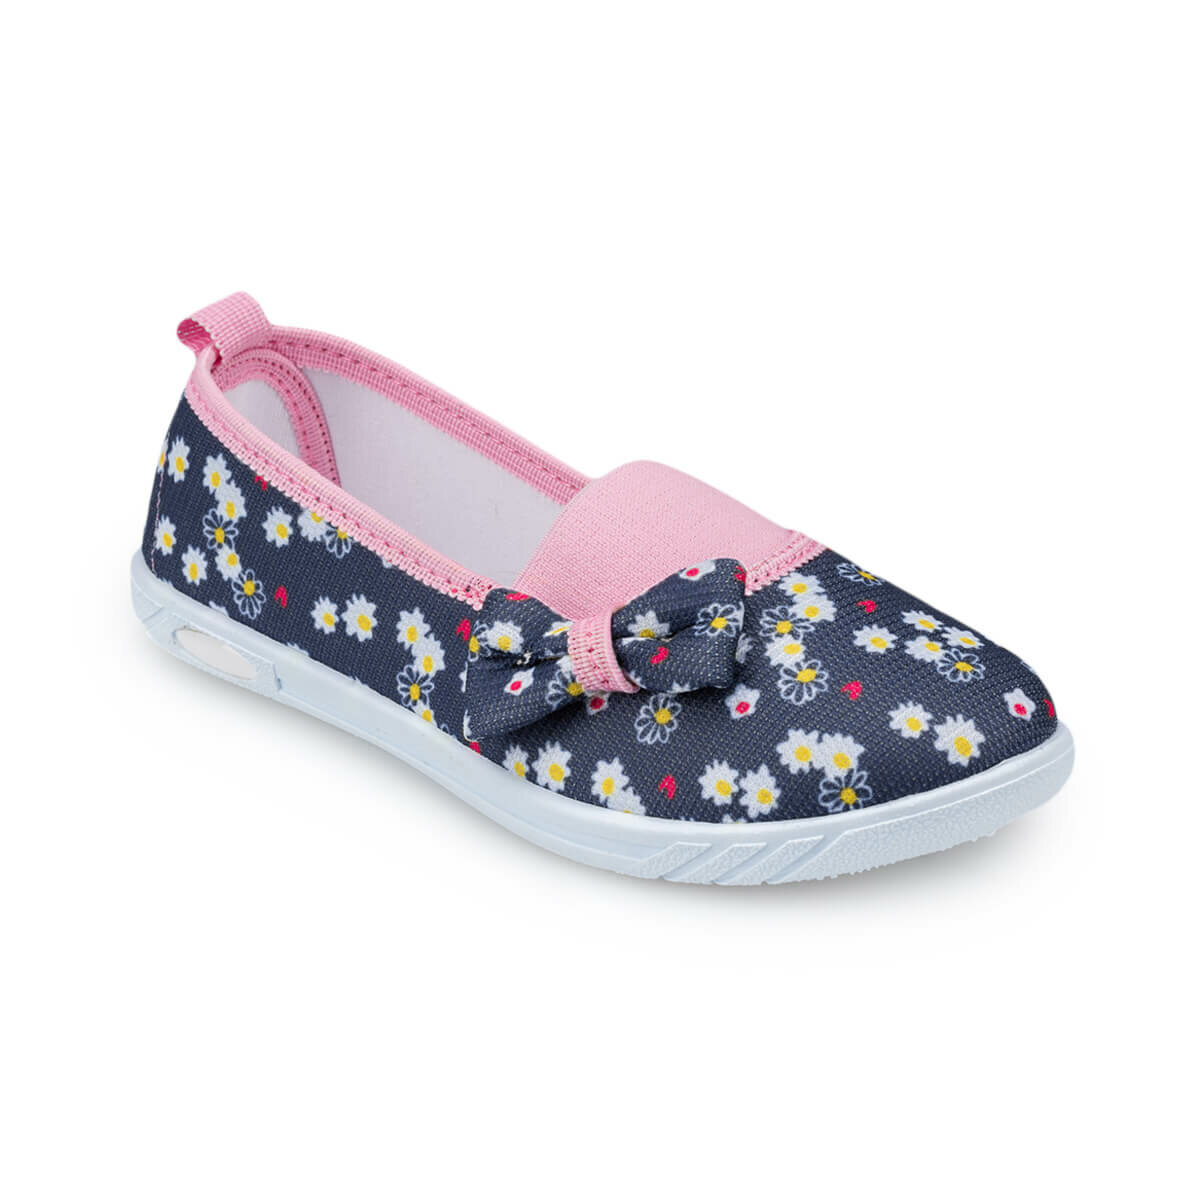 FLO 91. 510402.F Navy Blue Female Child Ballerina Polaris